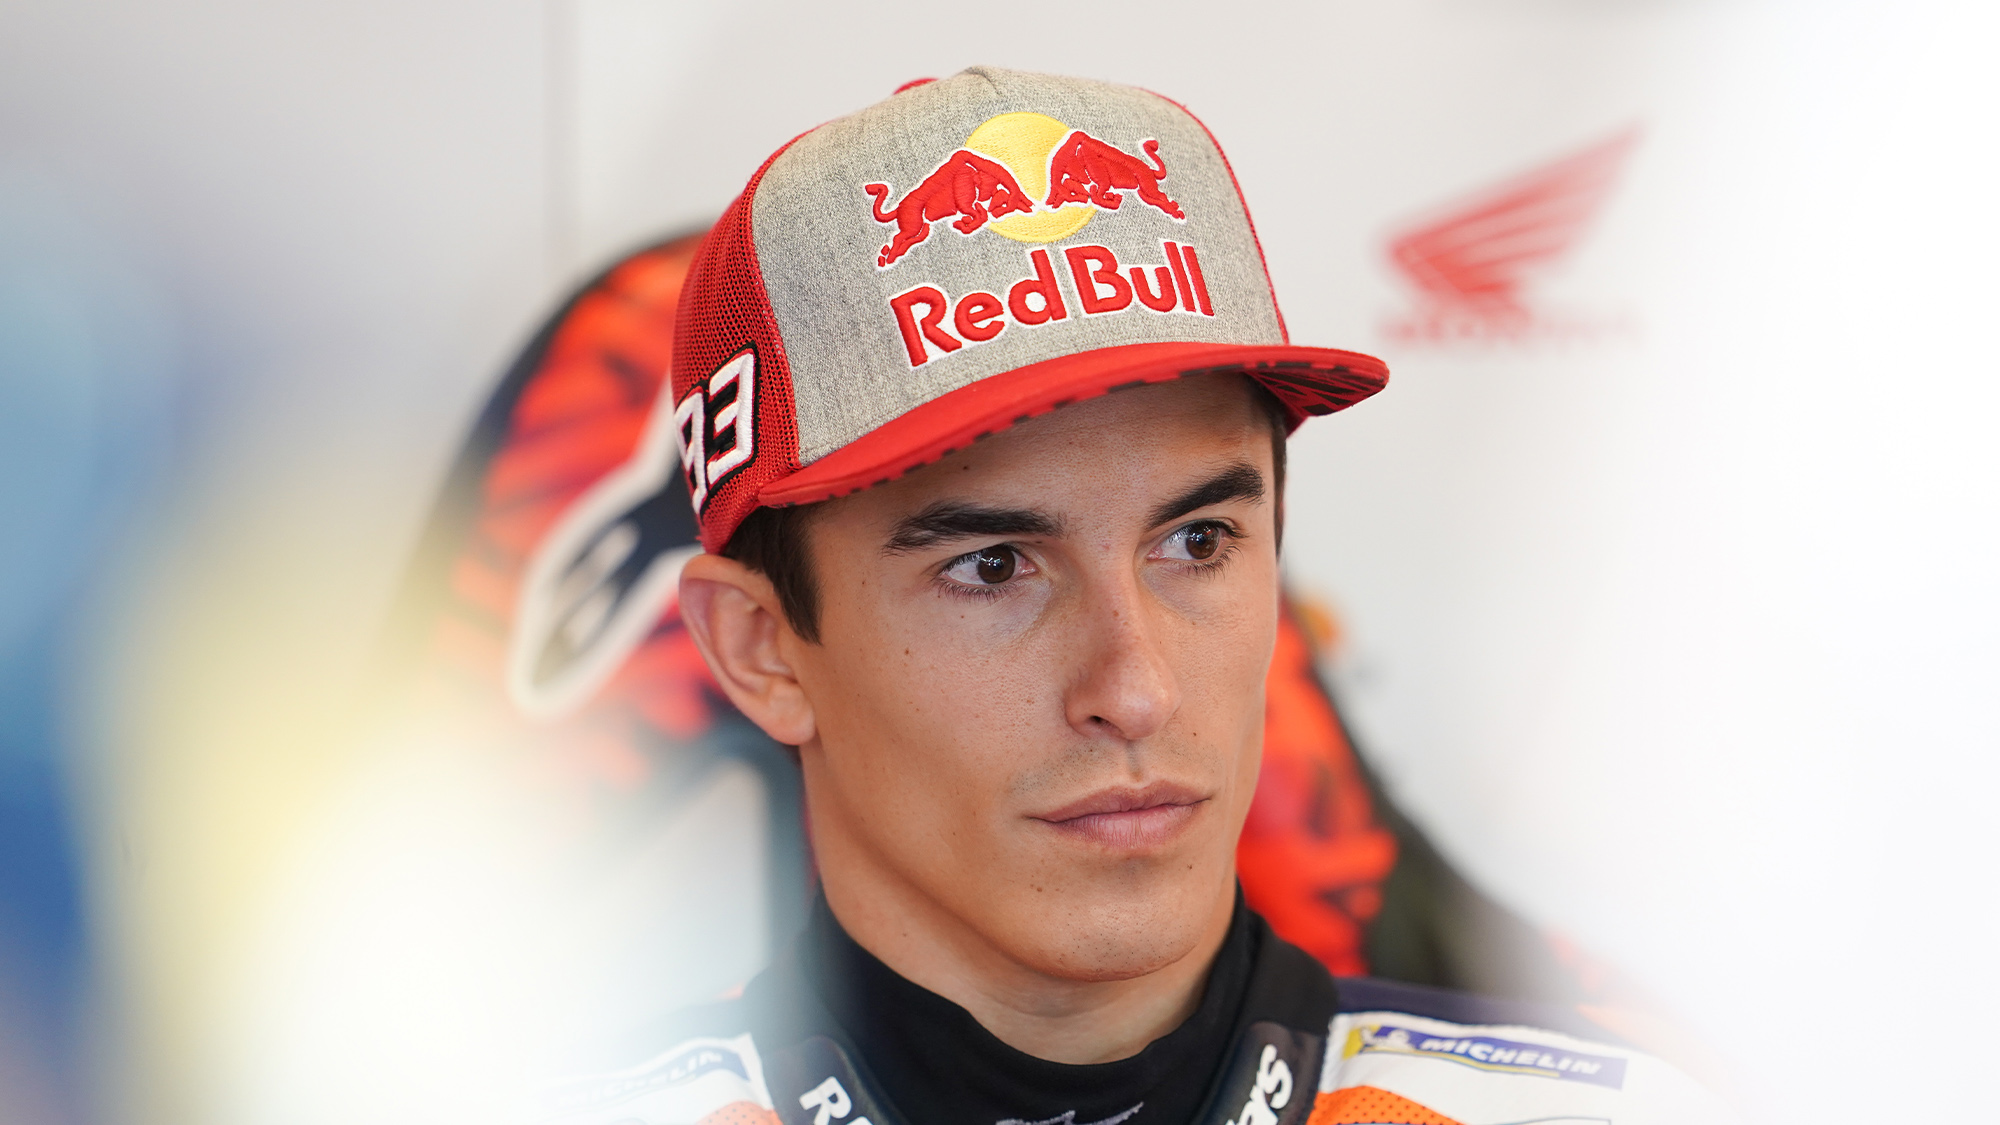 Márquez may miss start of 2021 MotoGP season after third arm operation